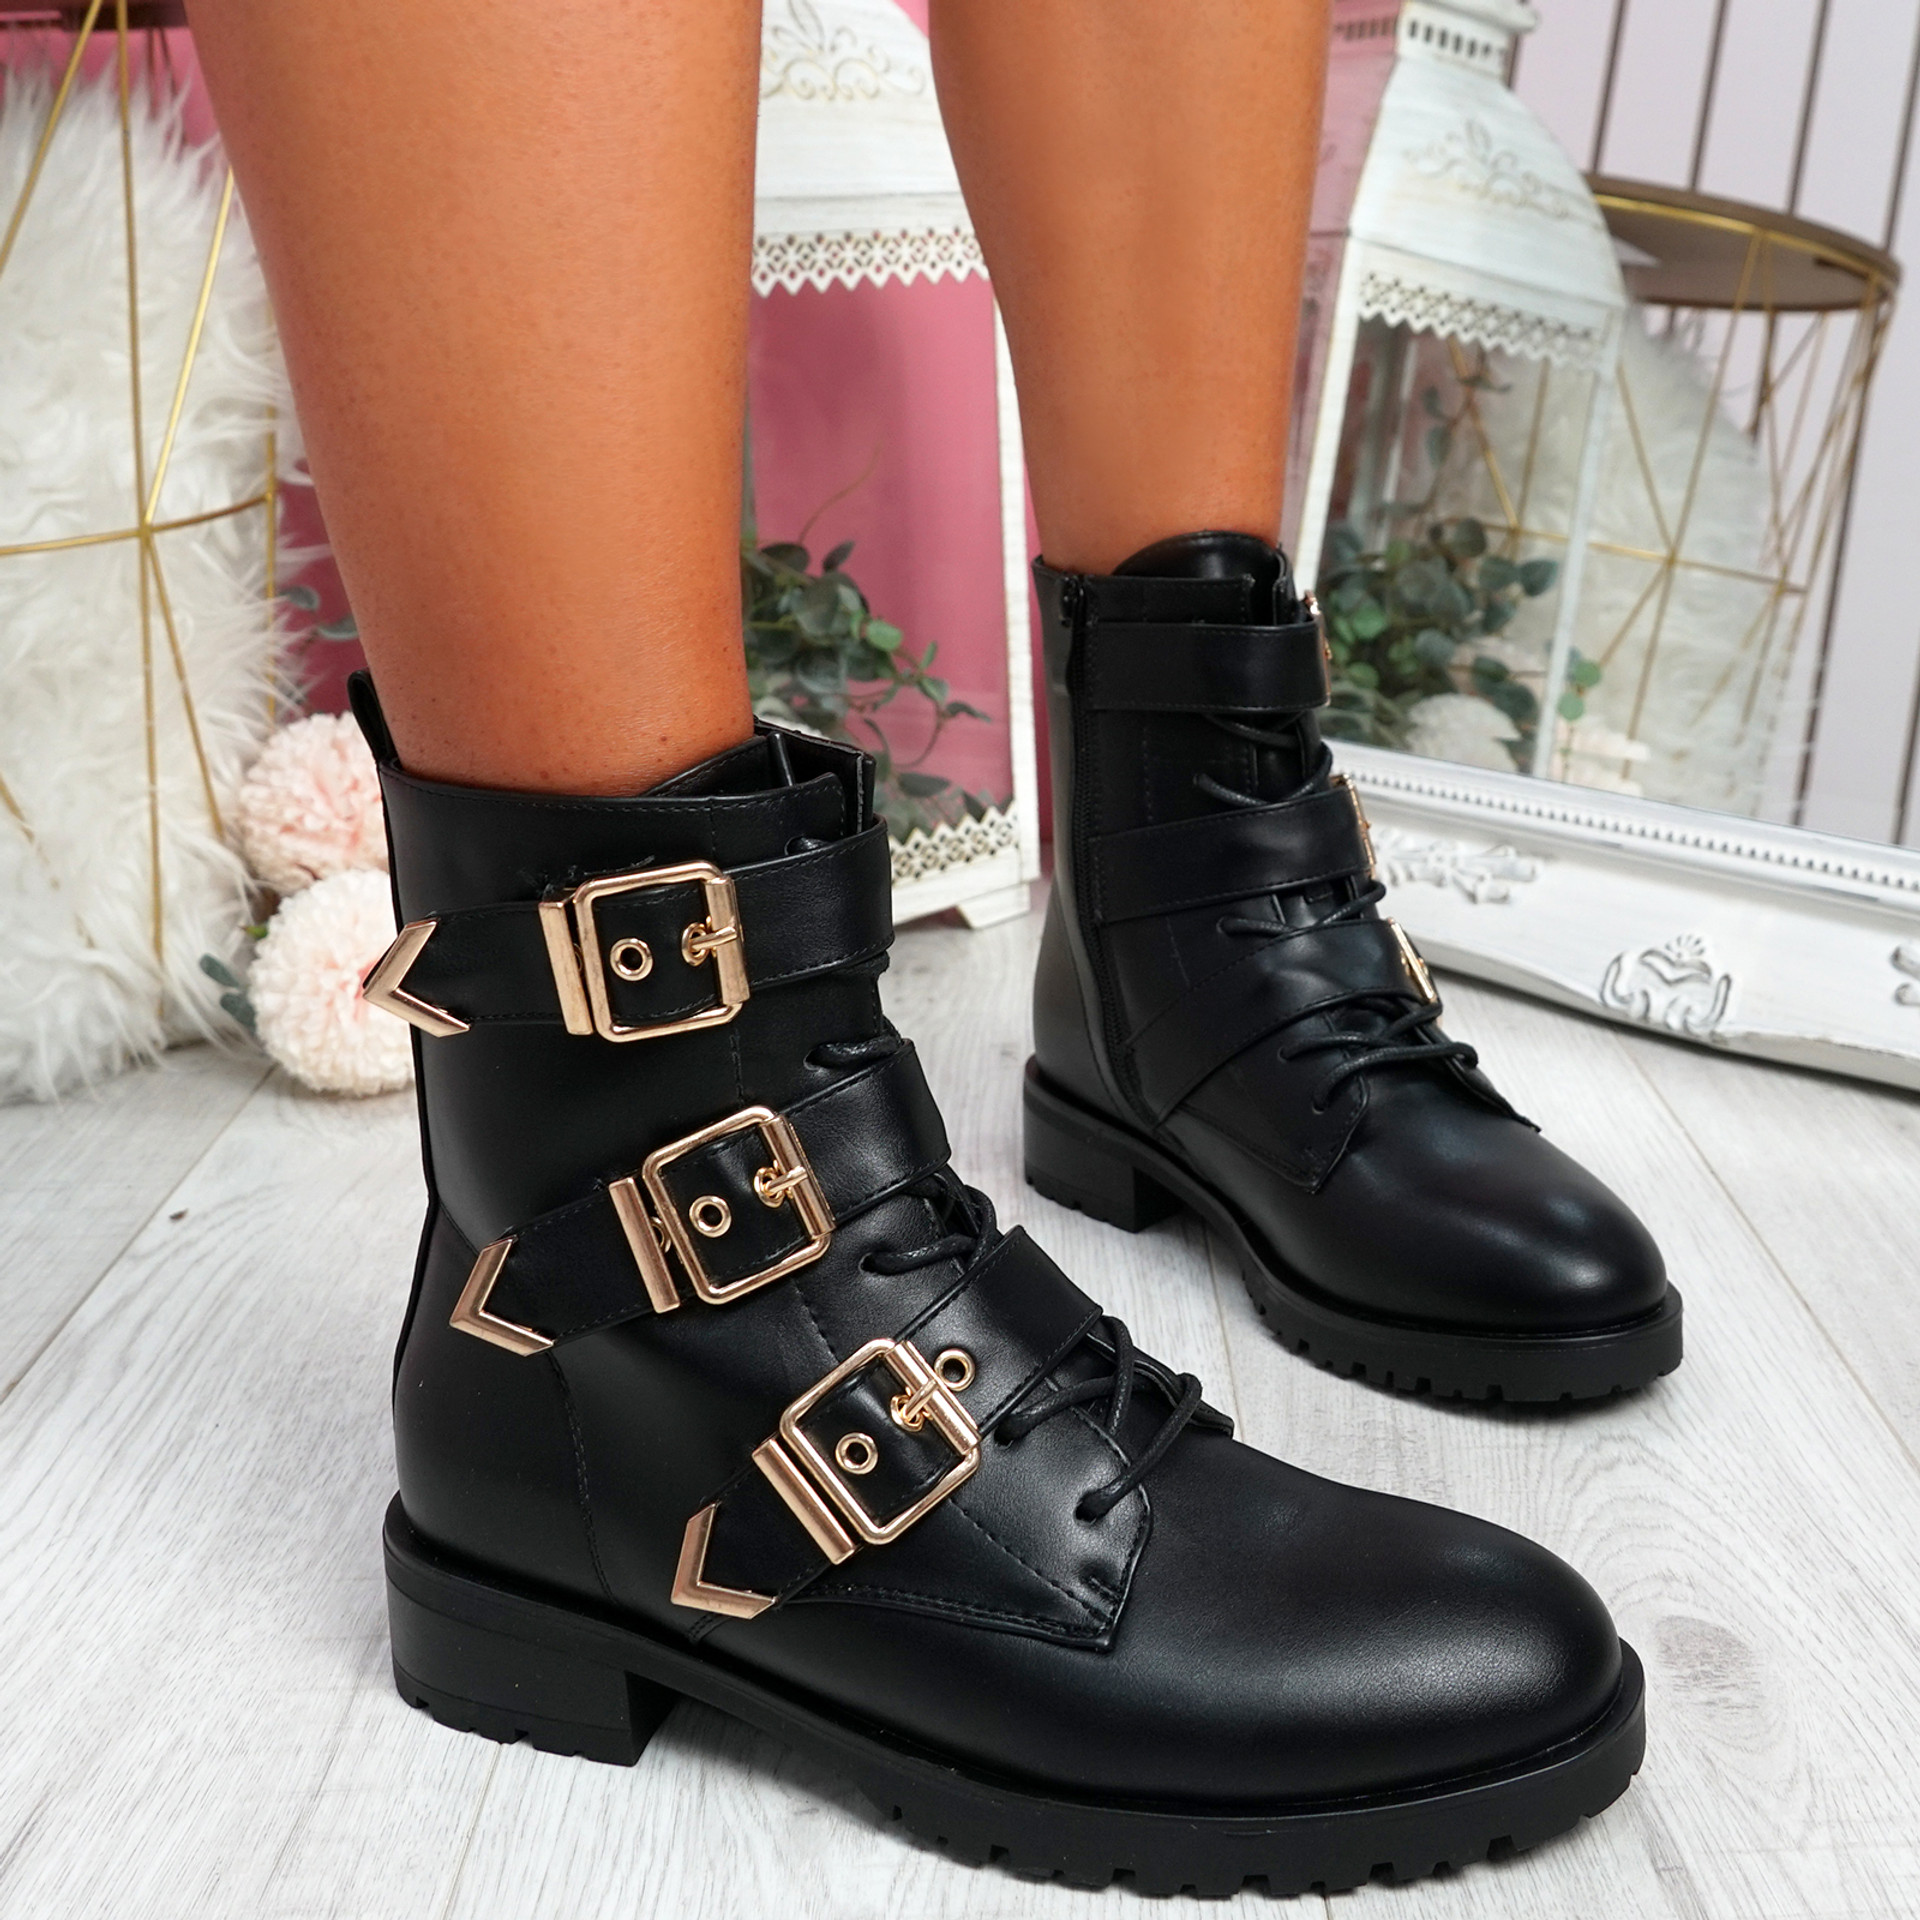 Famma Black Buckle Zip Ankle Boots